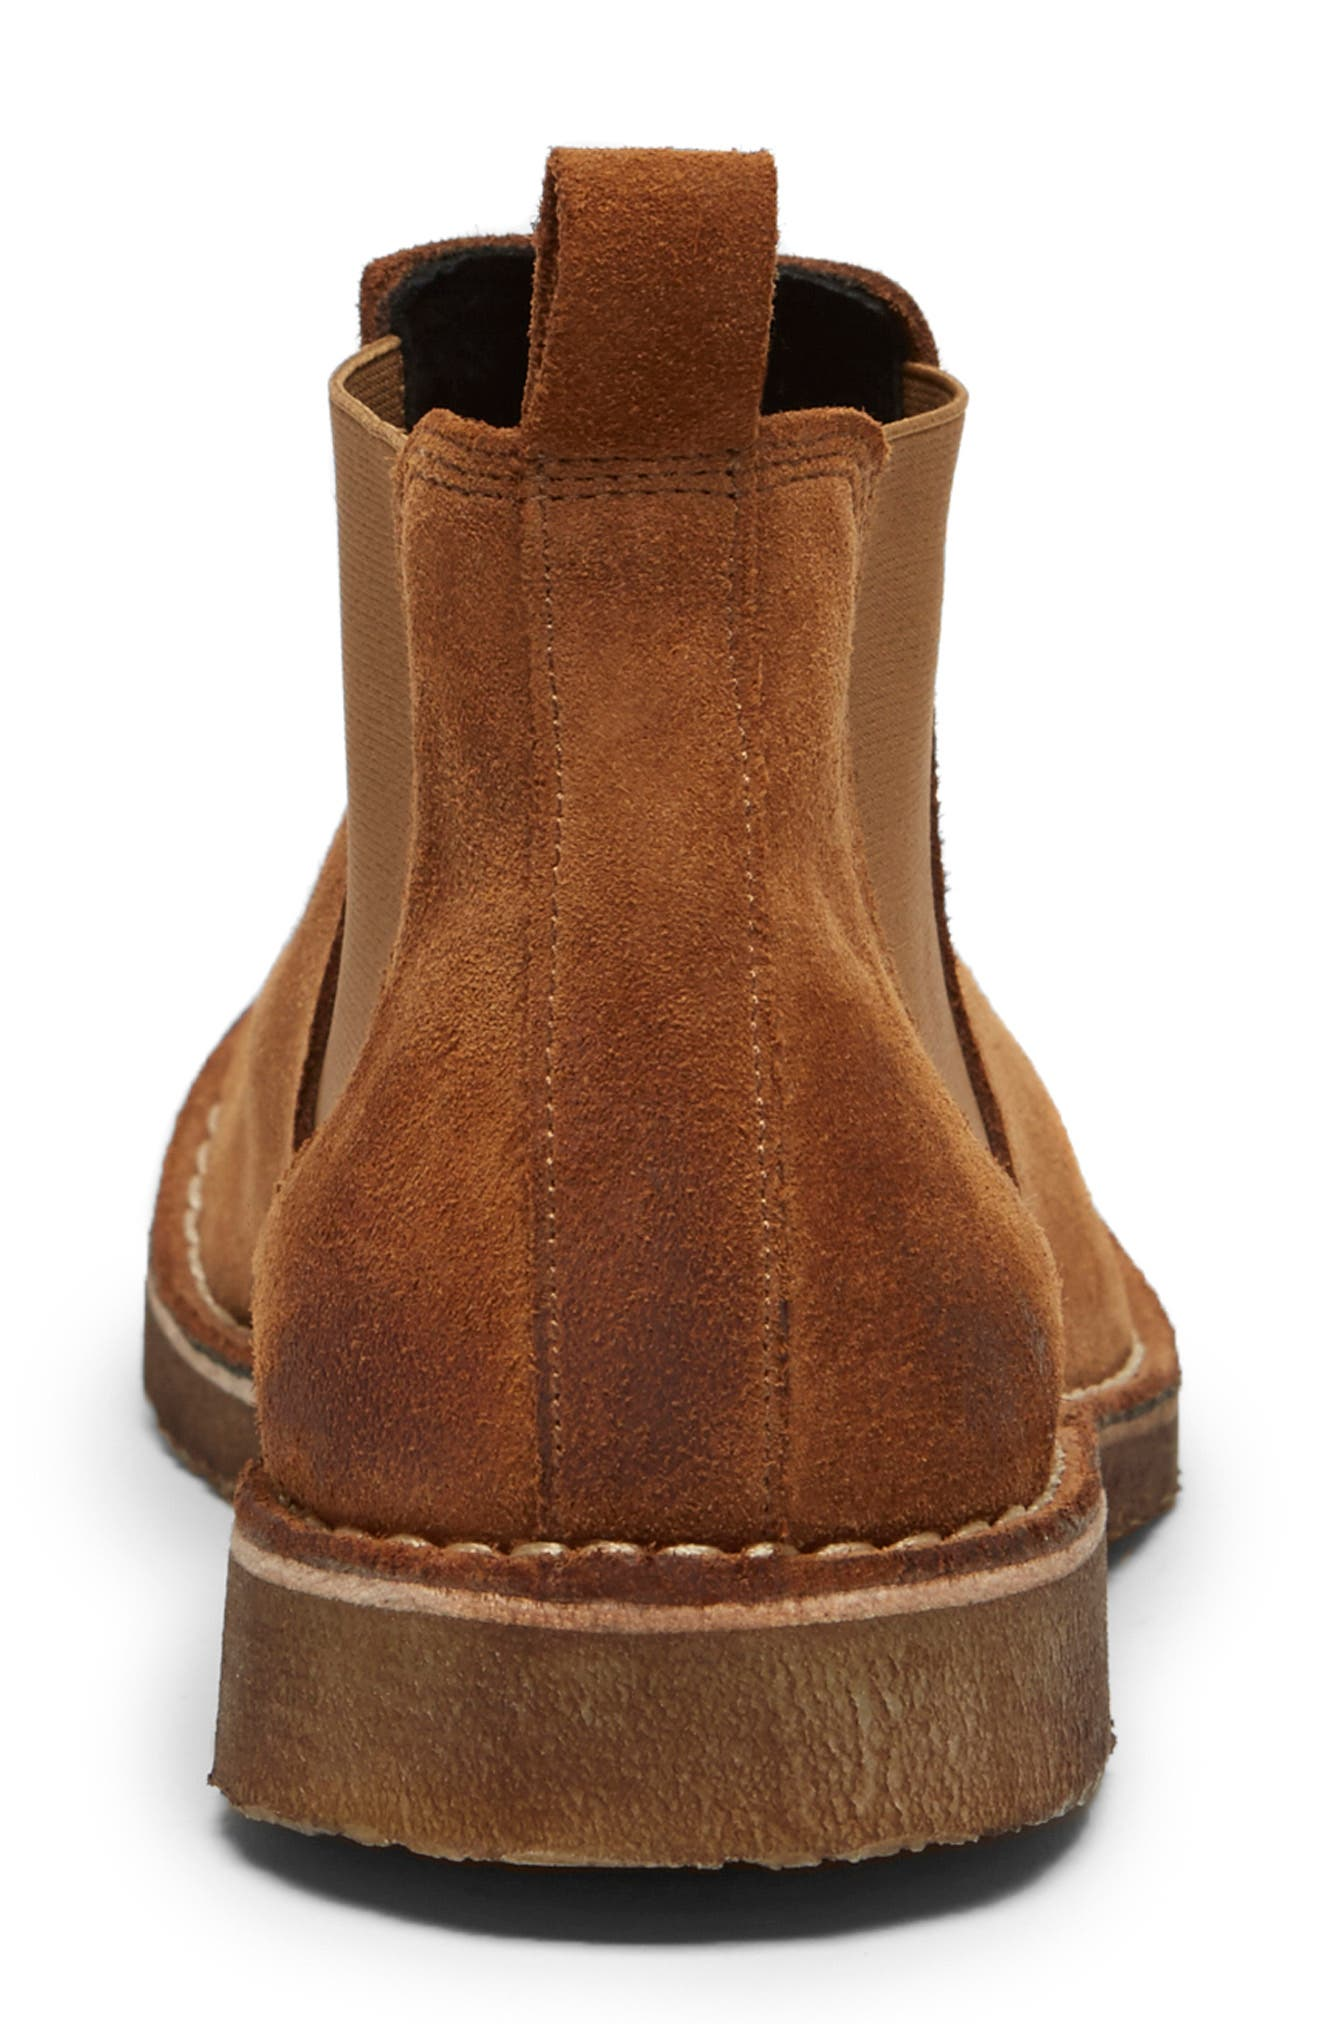 KENNETH COLE NEW YORK, Hewitt Chelsea Boot, Alternate thumbnail 3, color, RUST SUEDE